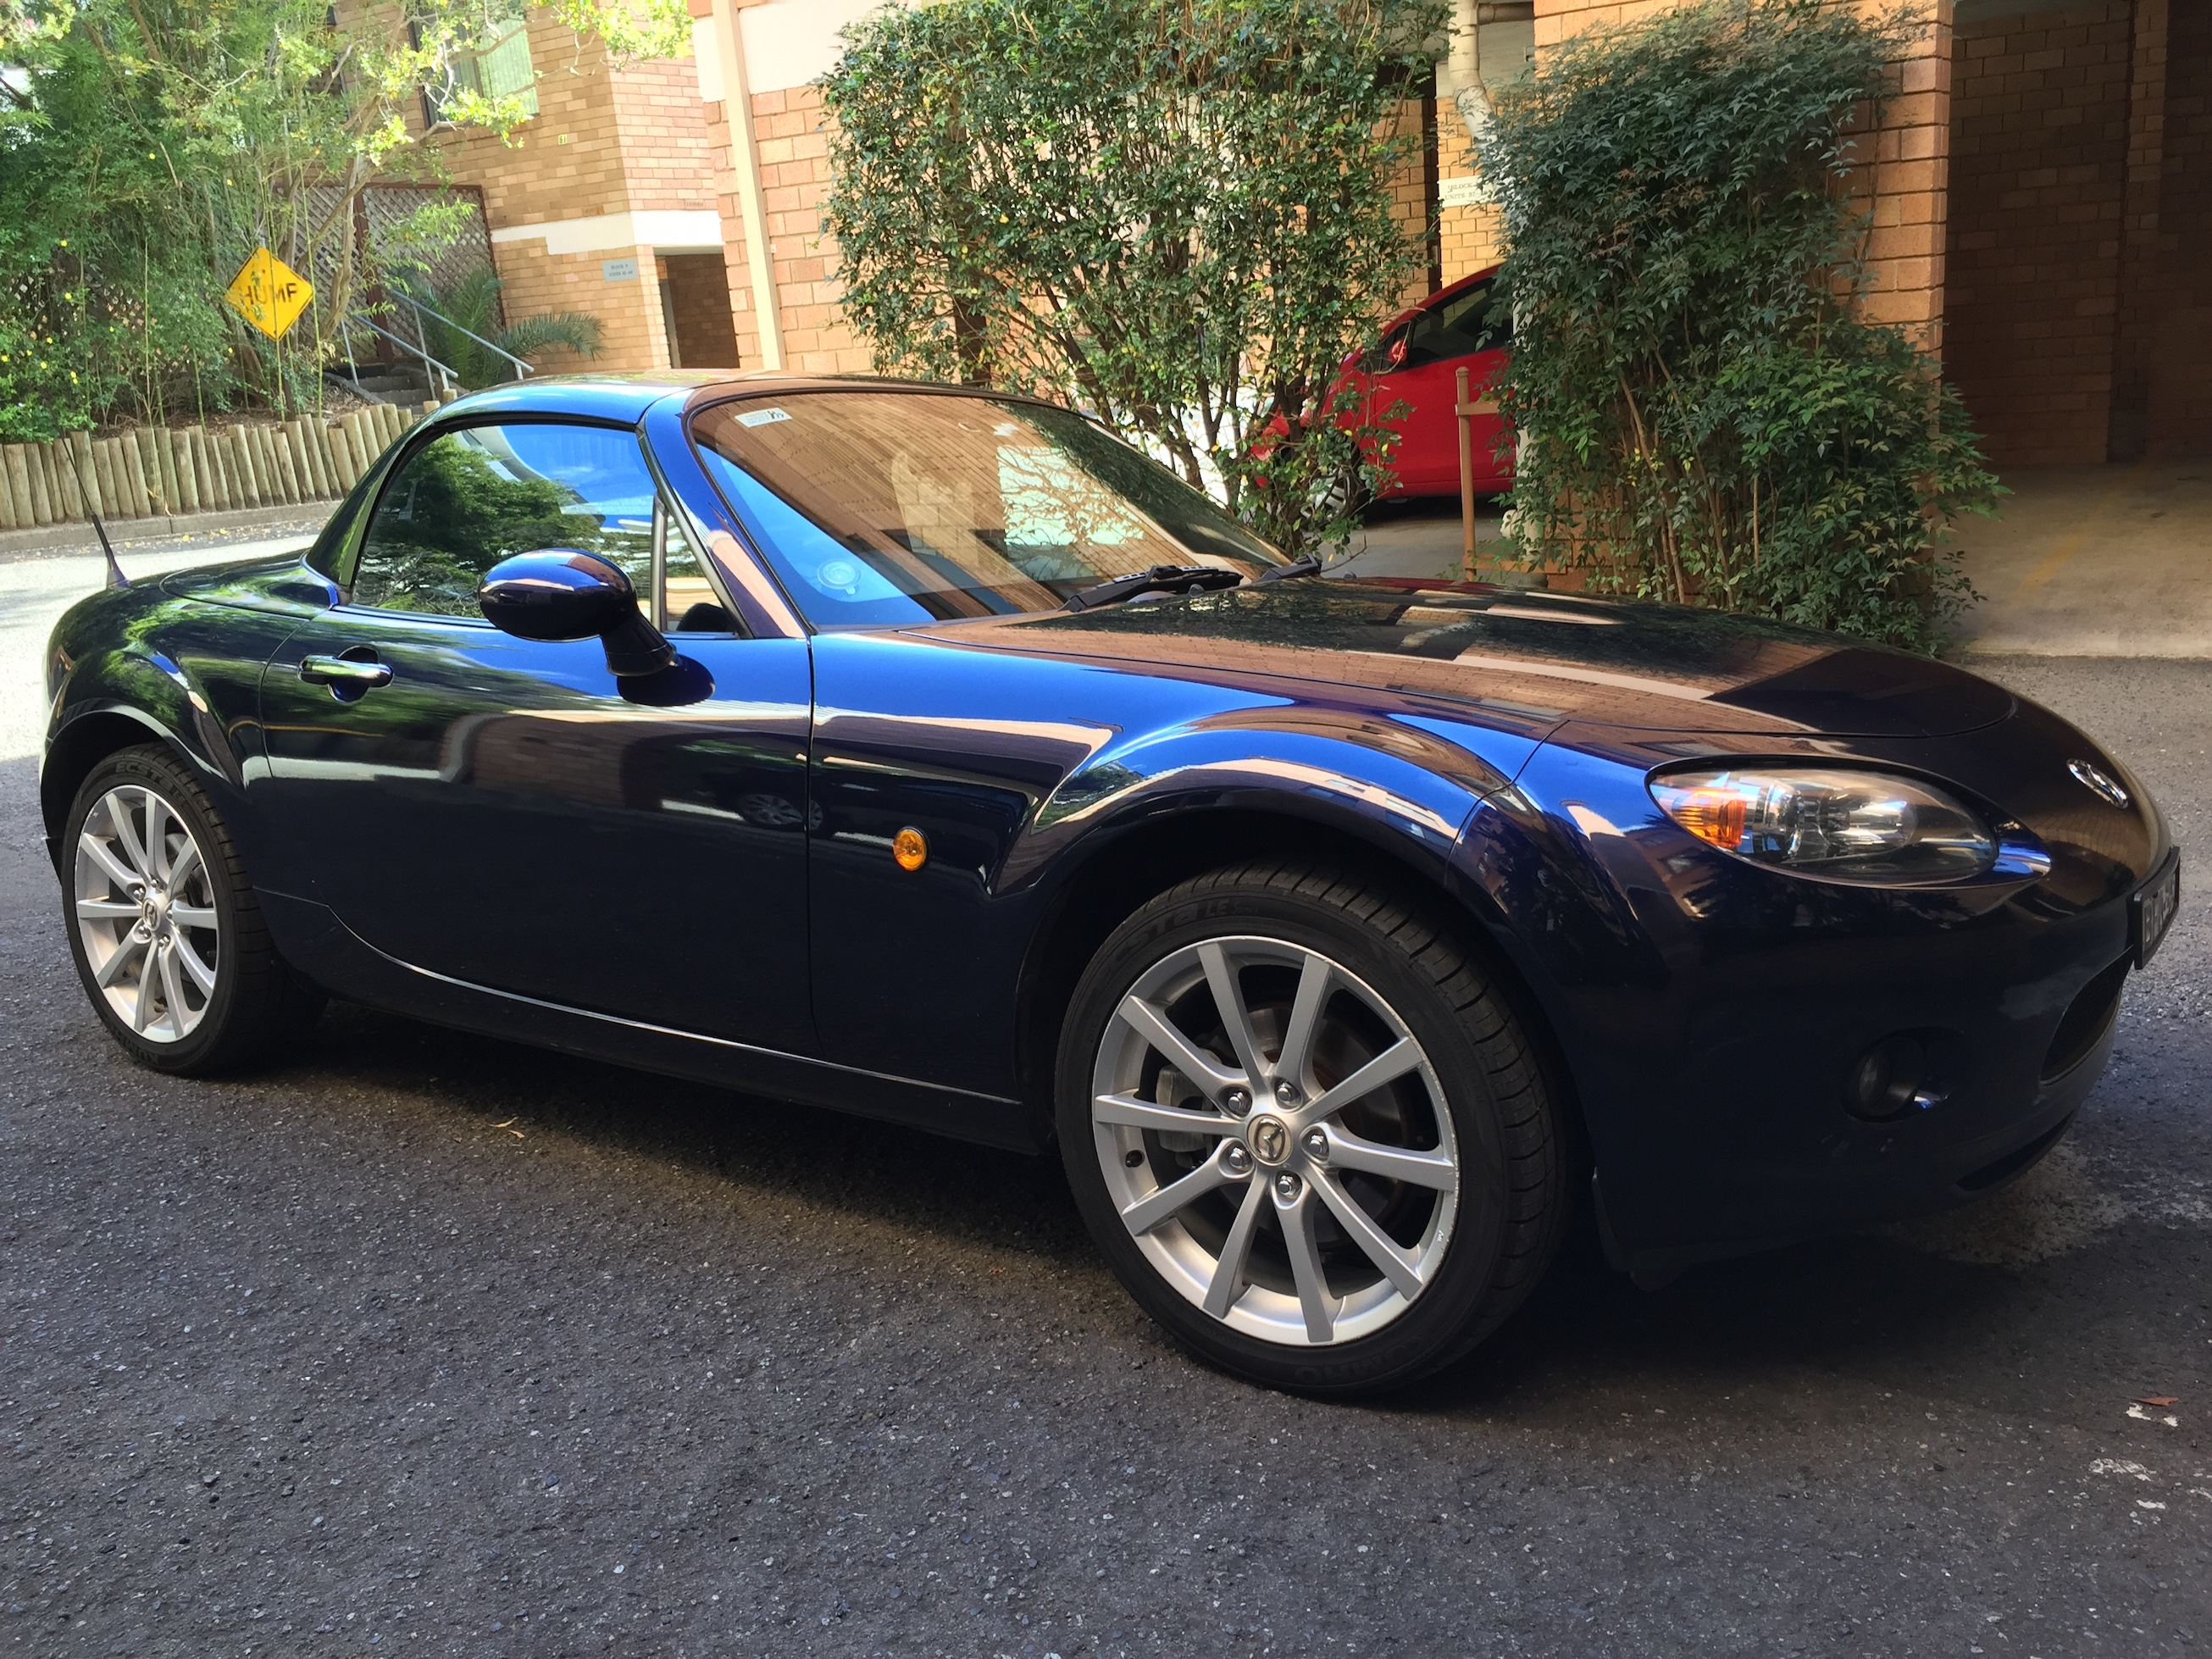 Picture of Paul's 2008 Mazda MX-5